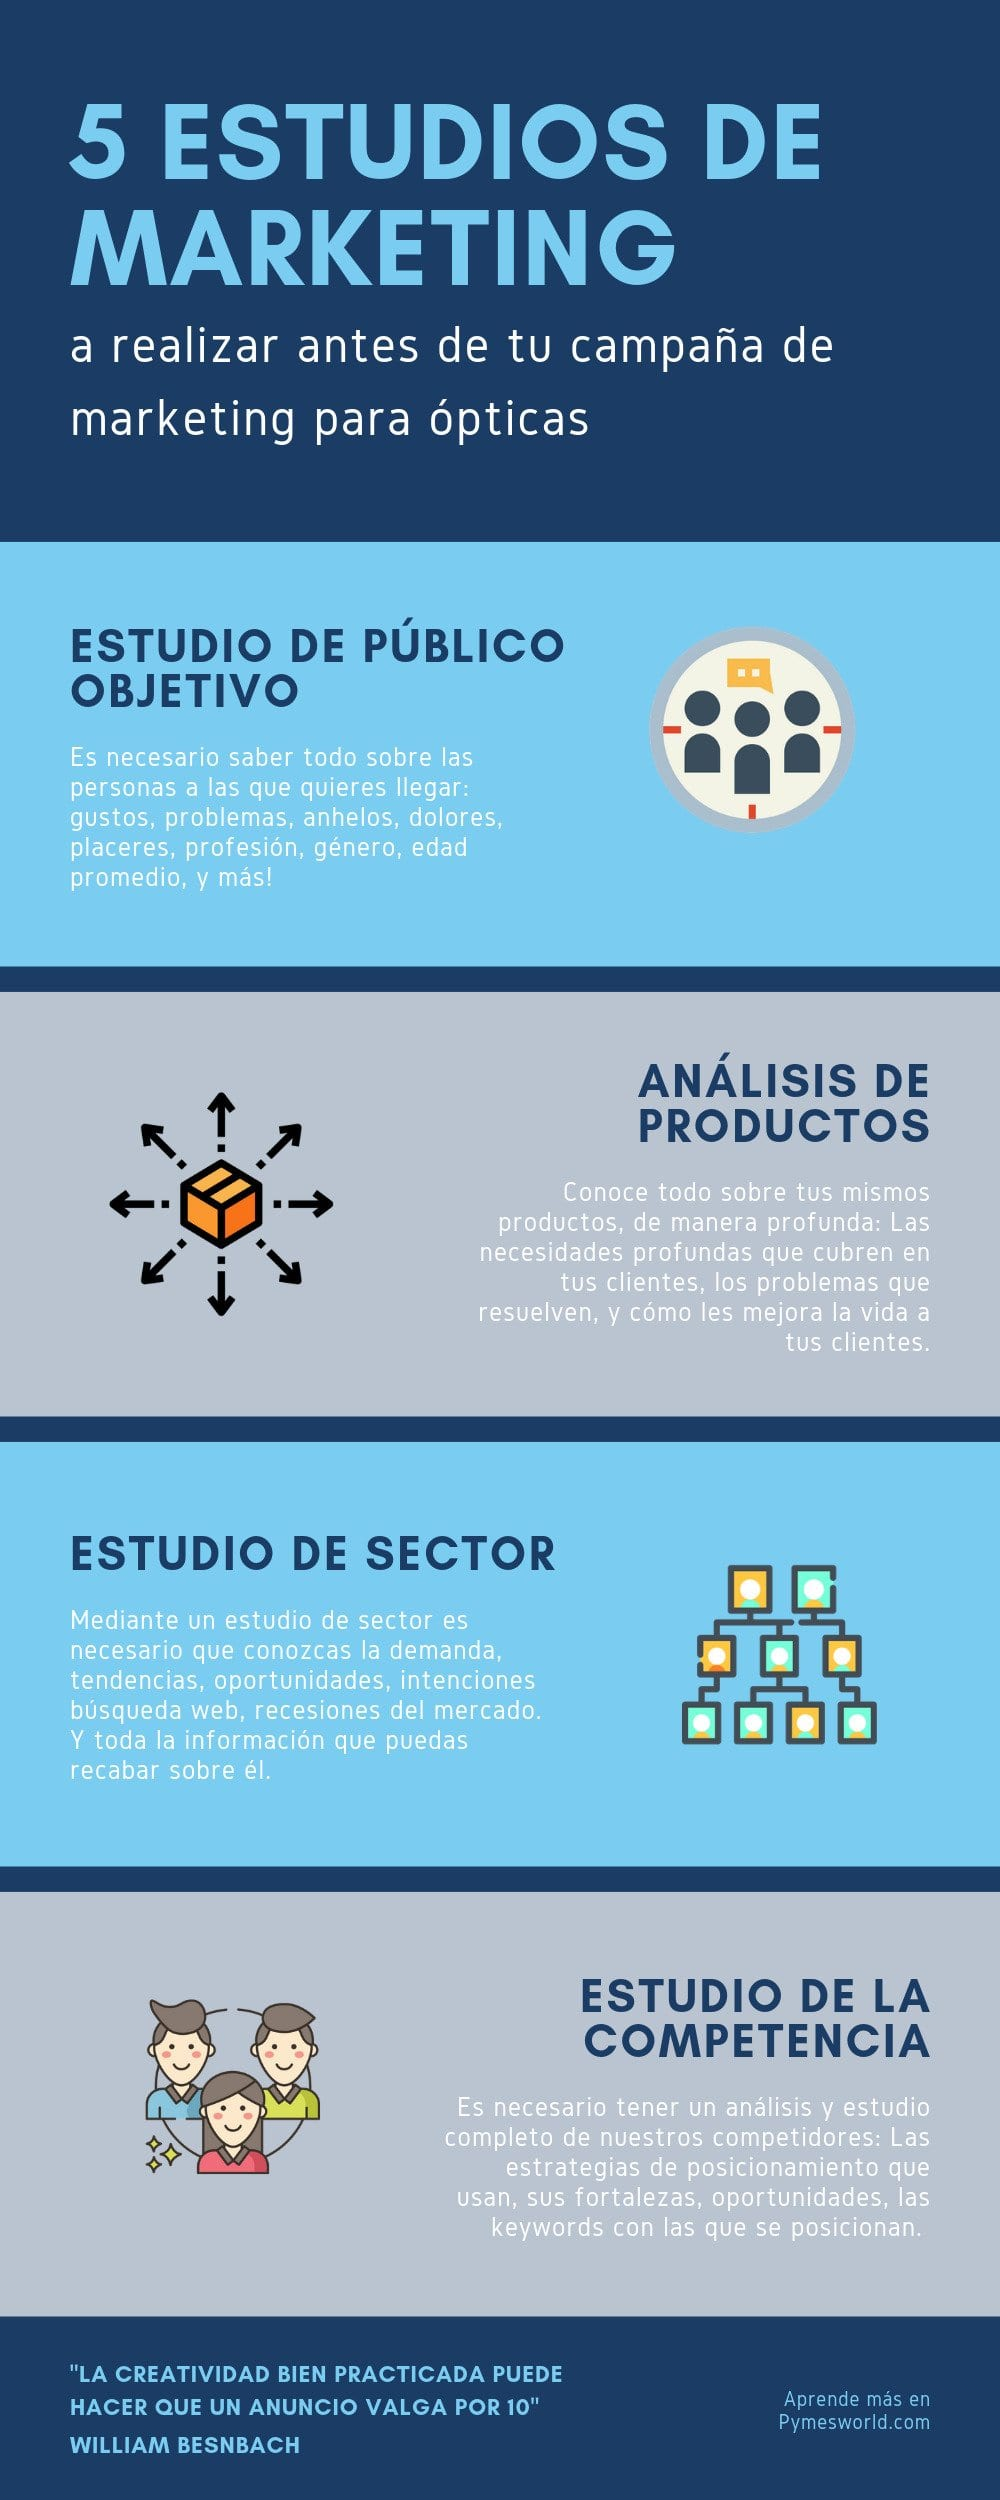 4 Estudios de Marketing